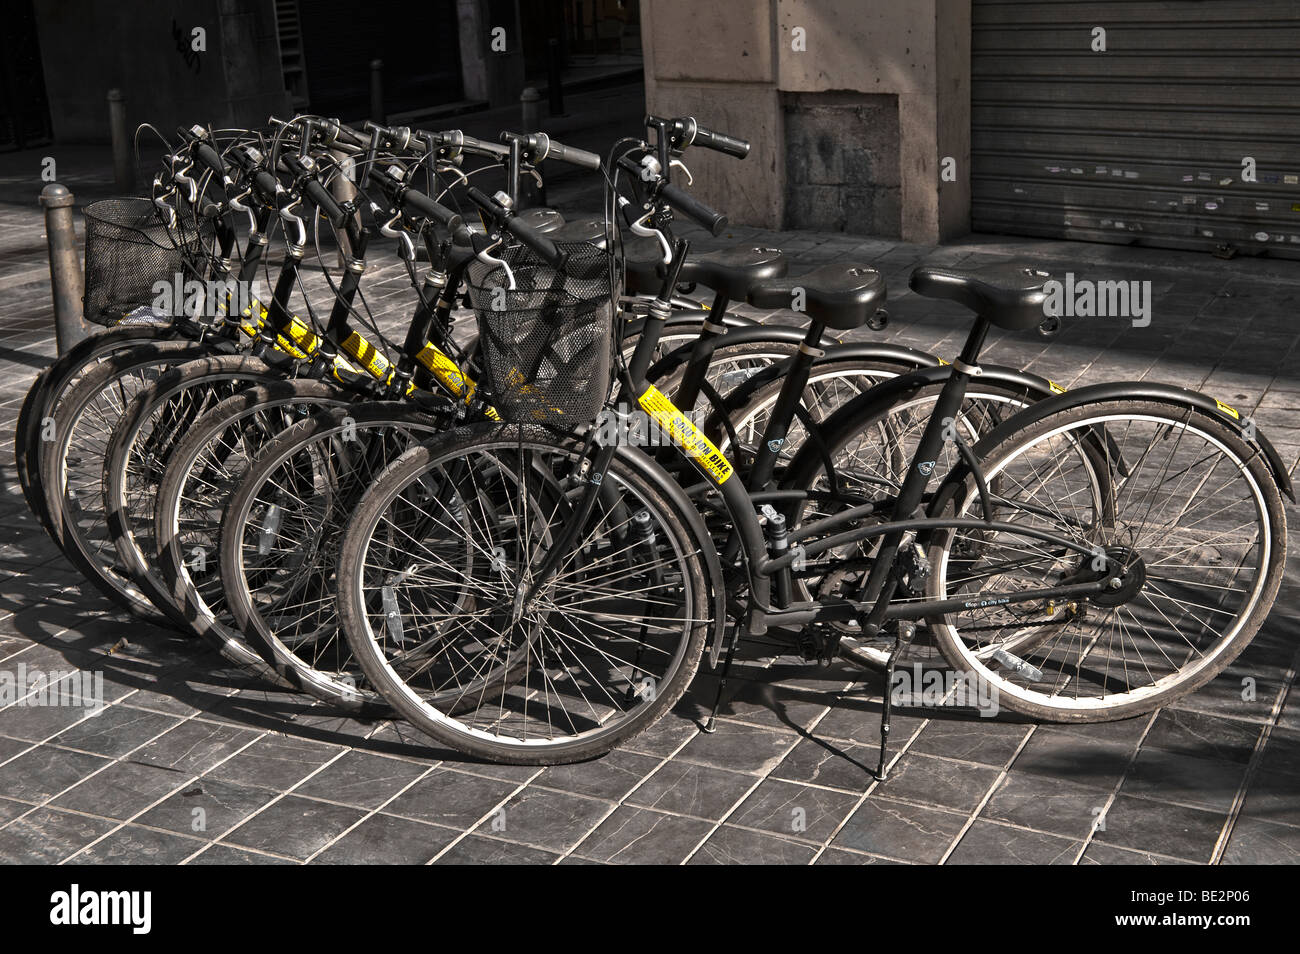 Bikes for hire in Valencia, Spain - Stock Image